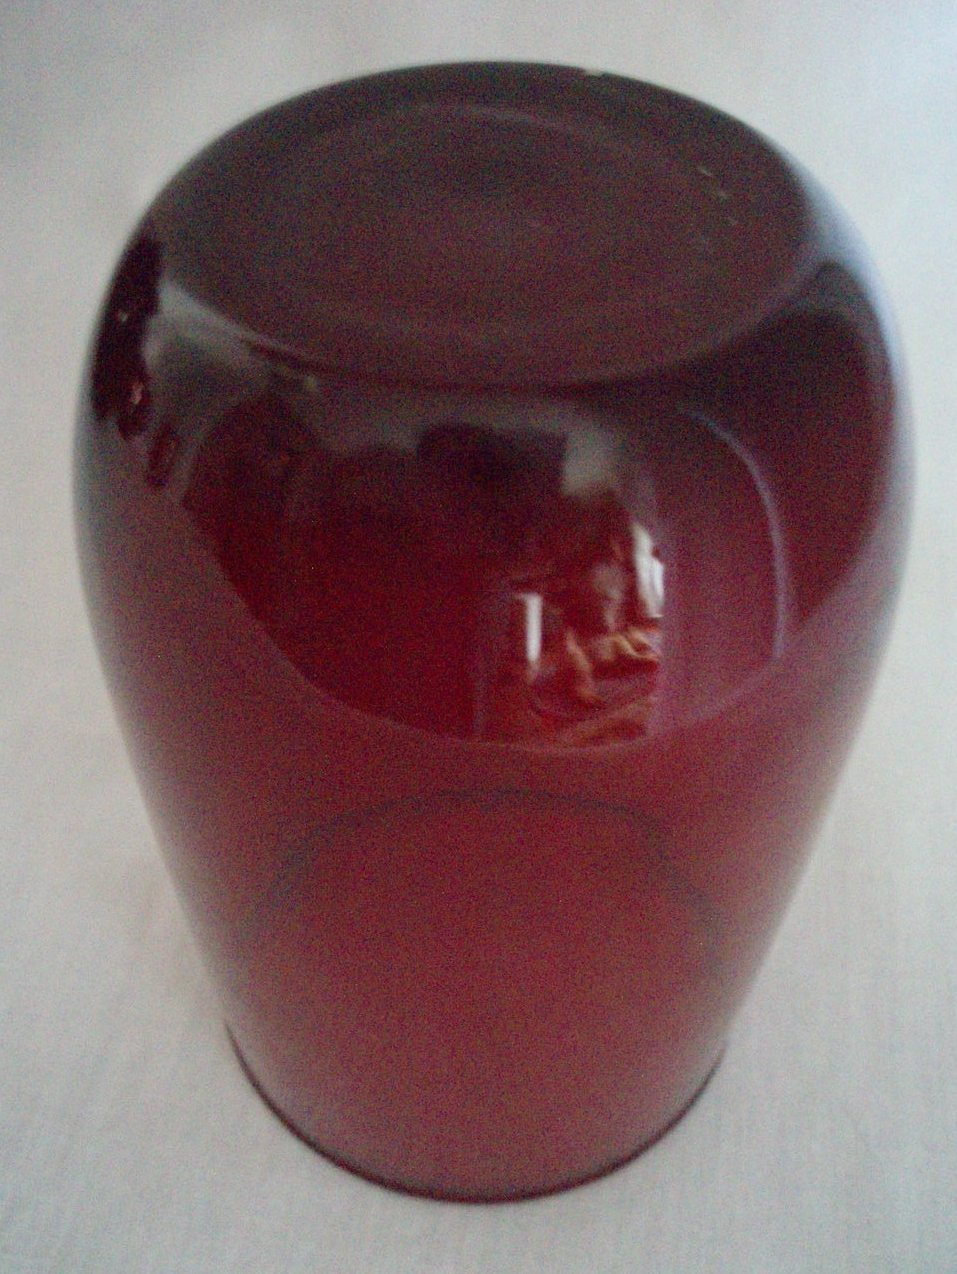 Image 1 of Anchor Hocking Royal Ruby Red 42 oz tilt Pitcher & 8 Juice tumblers vintage